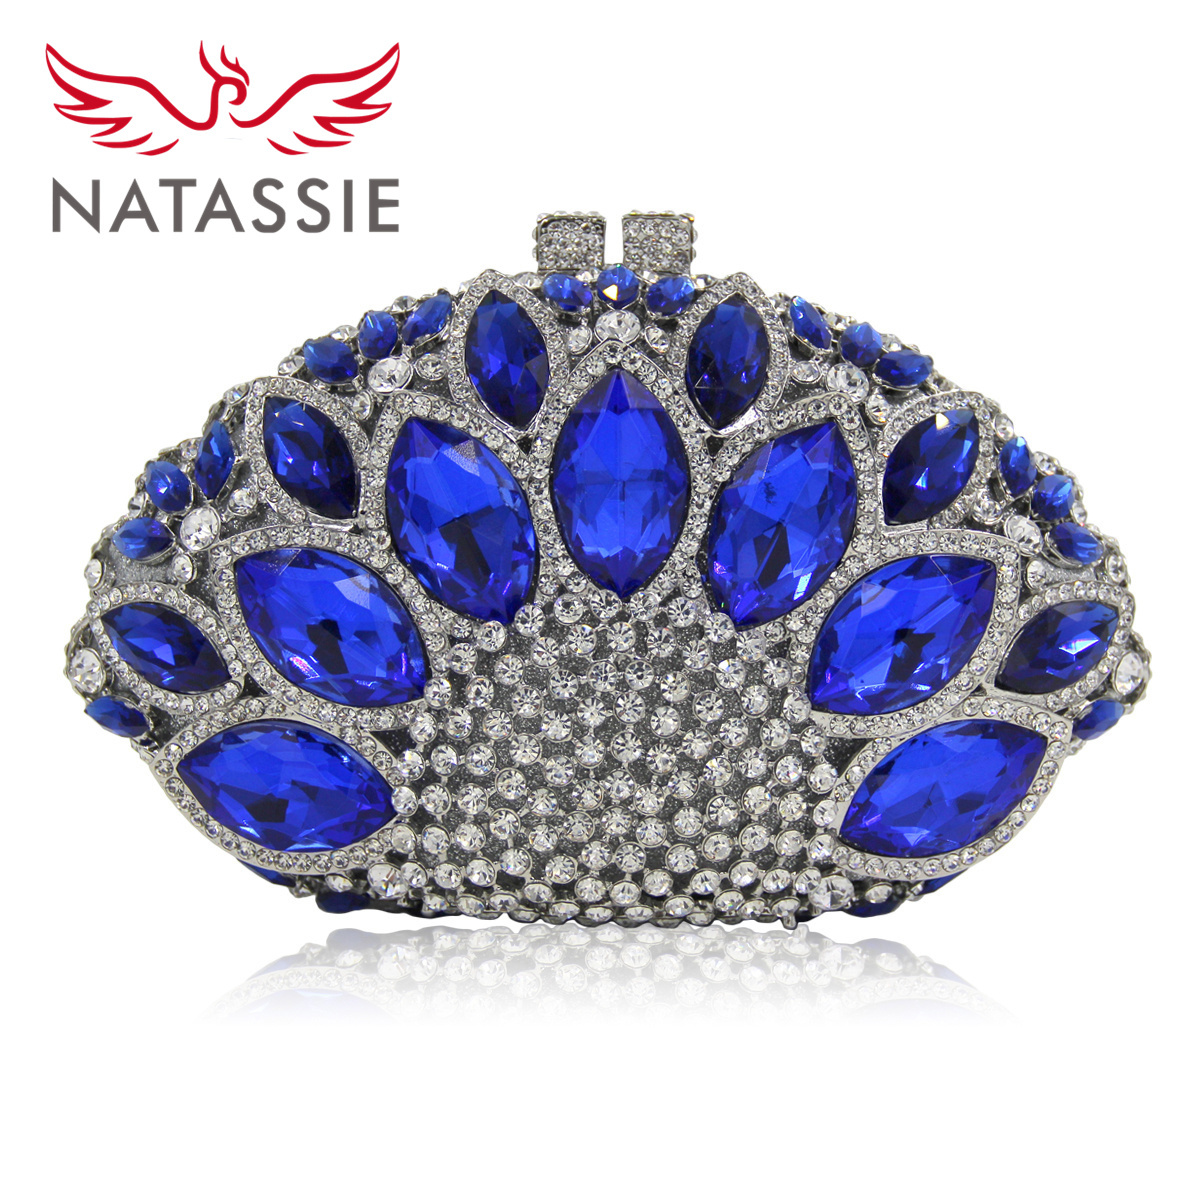 NATASSIE Women Day Clutch  Bags Ladies Silver Evening Clutches Party Bag Female Wedding Purses natassie women evening bags ladies crystal wedding clutch bag female party clutches purses